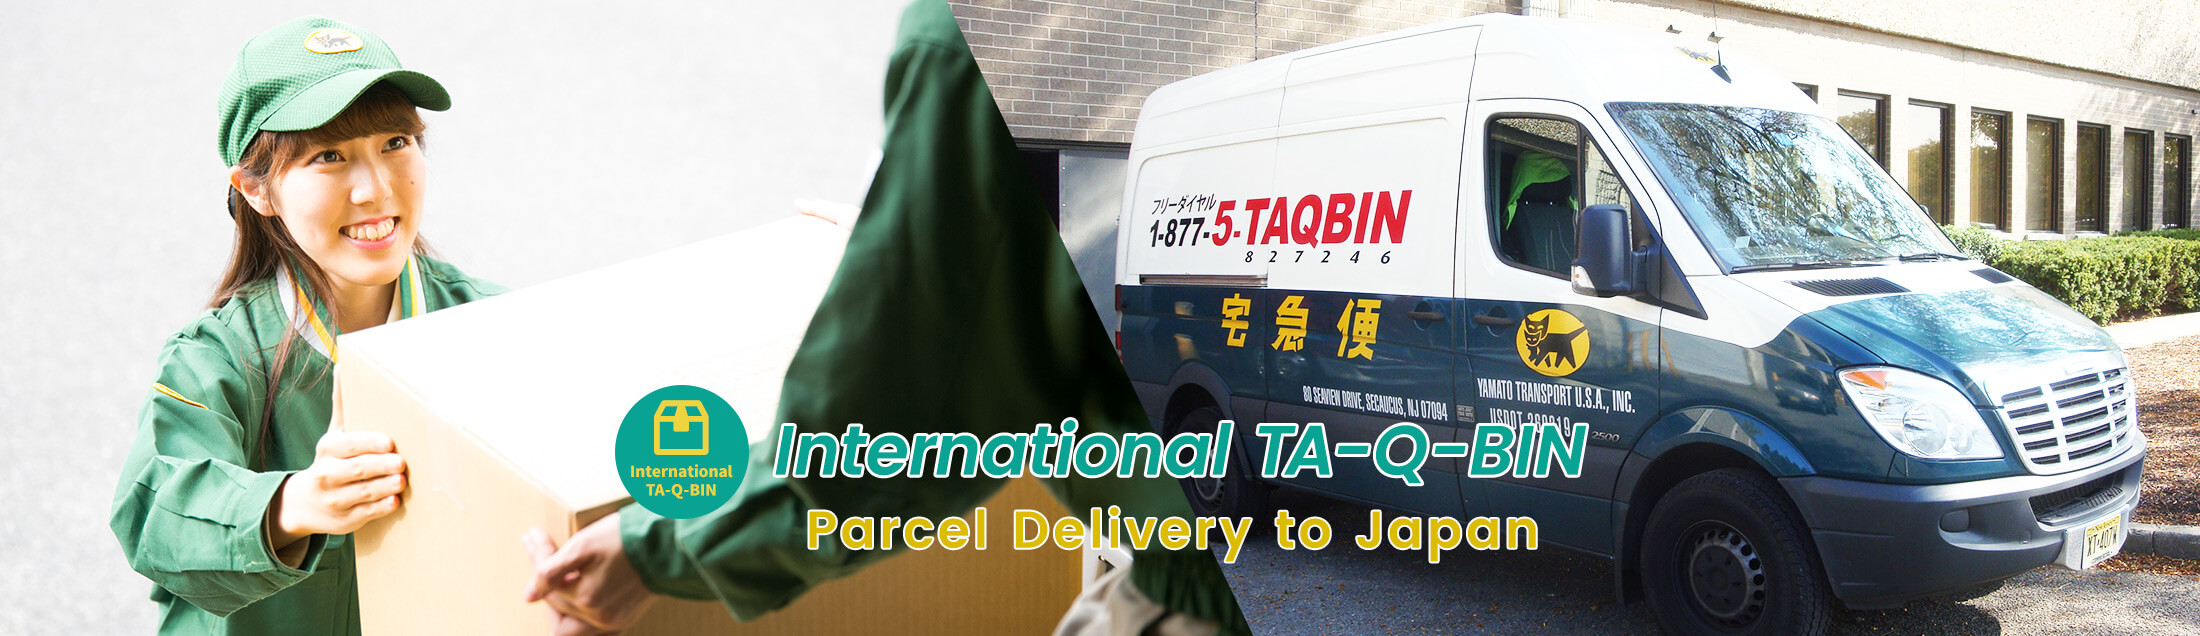 International TA-Q-BIN